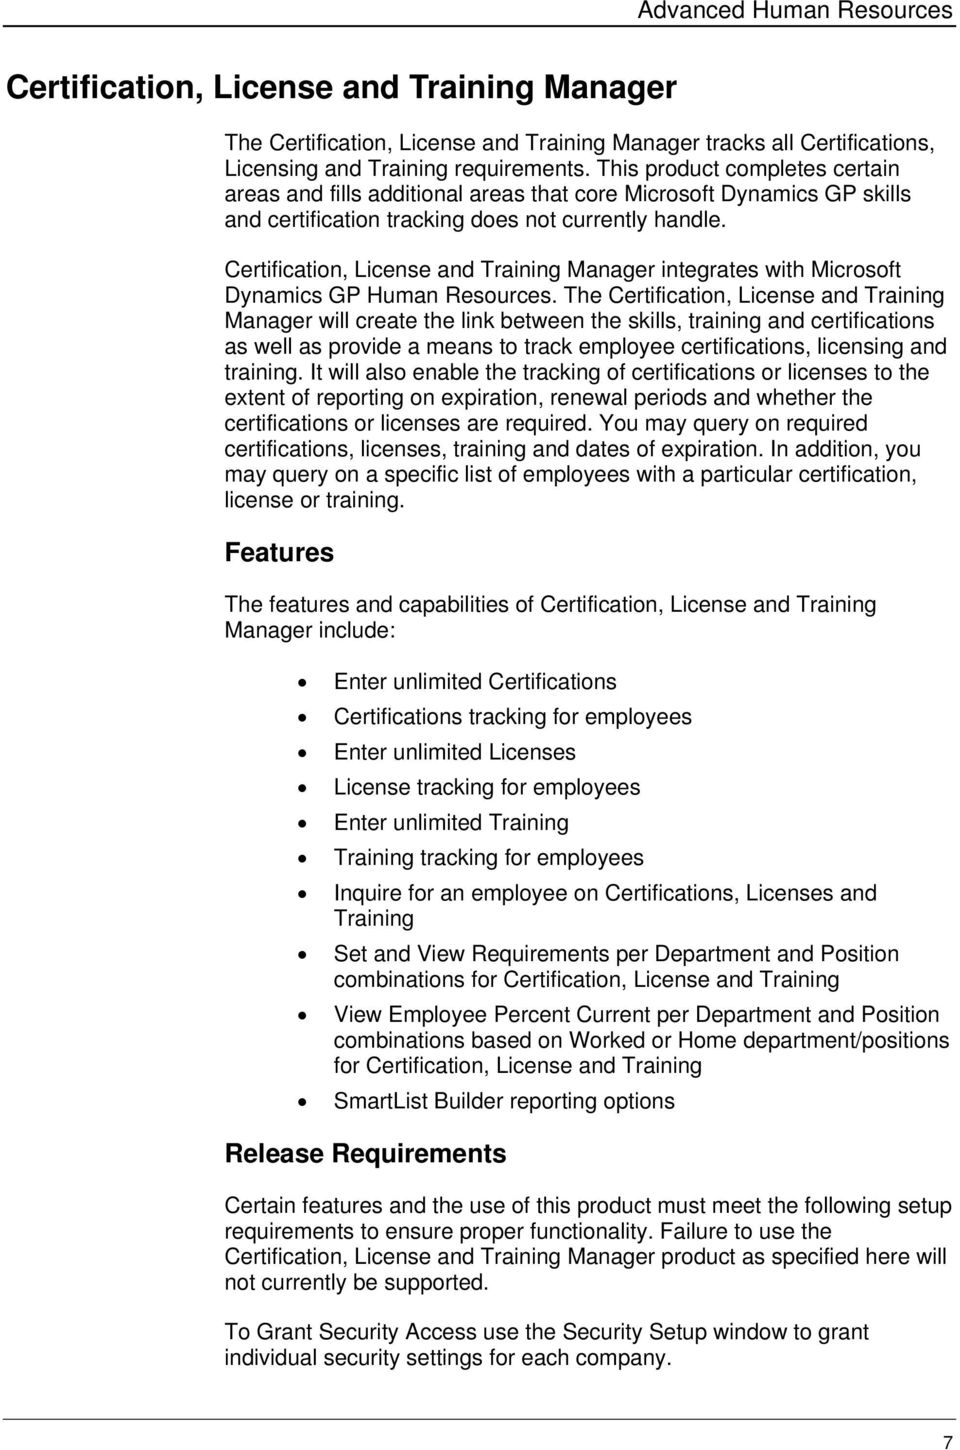 Certificatin, License and Training Manager integrates with Micrsft Dynamics GP Human Resurces.